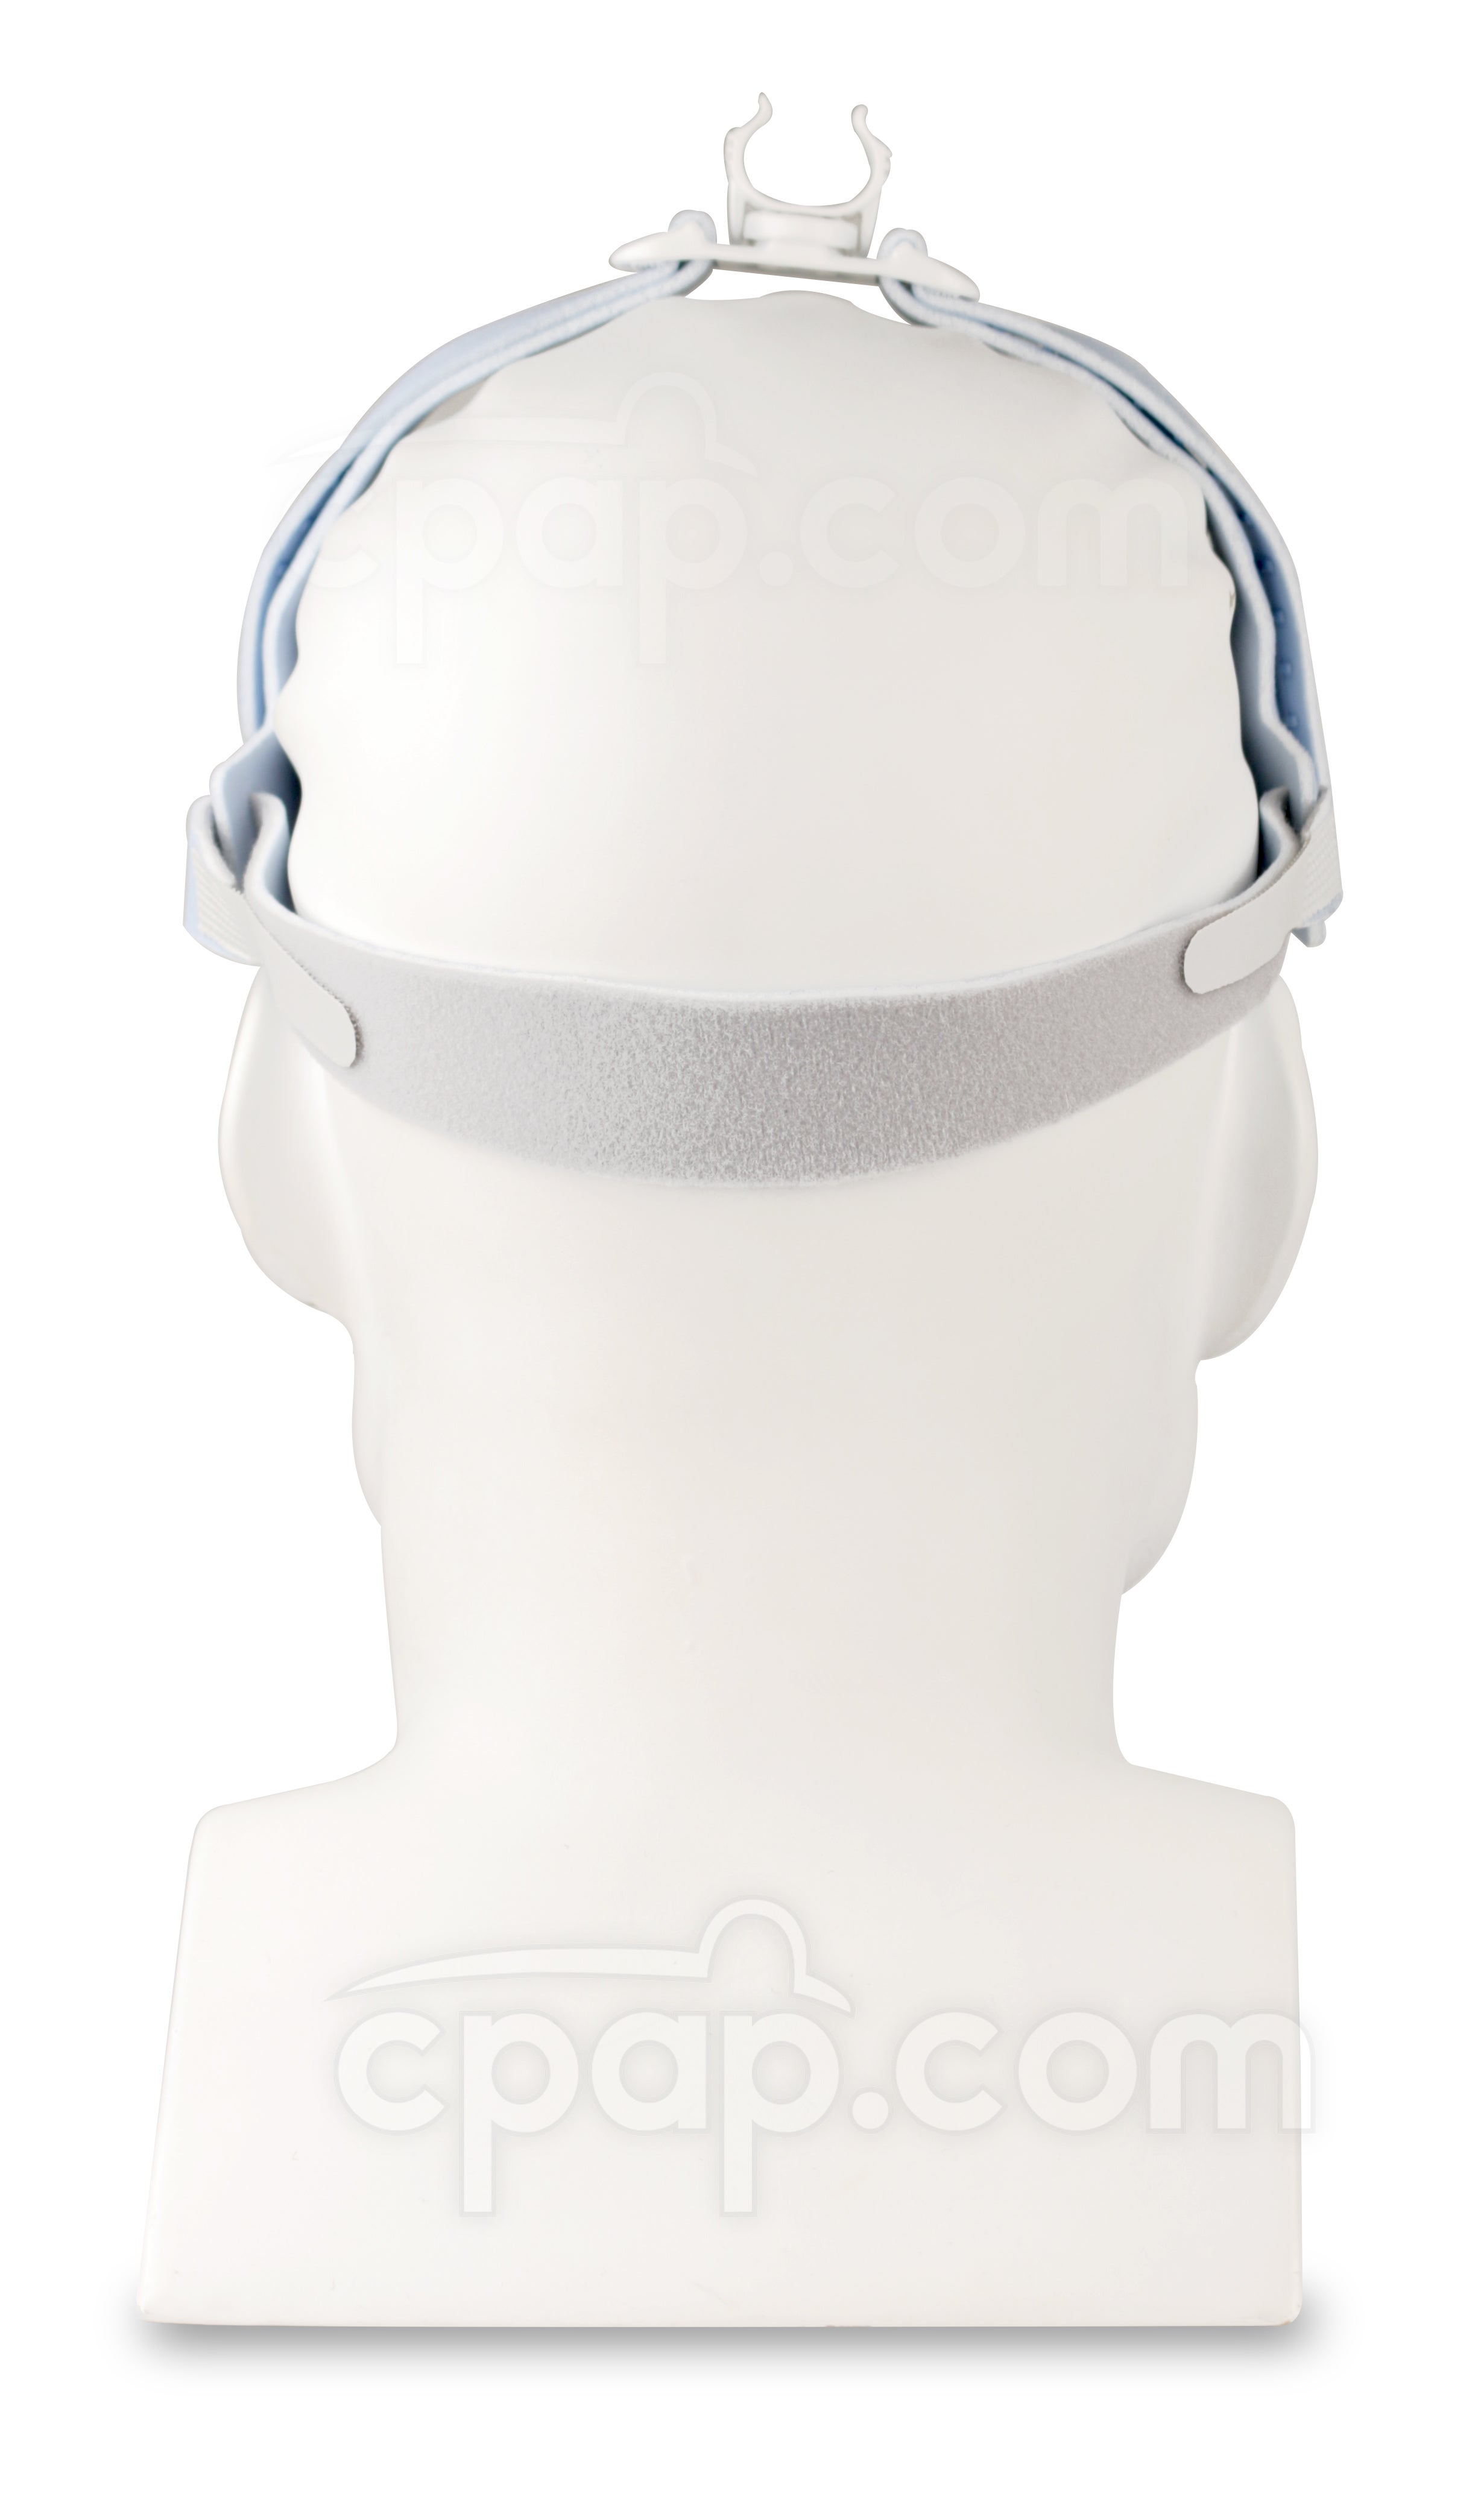 Headgear for Mr. Wizard 230 Nasal Pillow CPAP Mask (Mannequin Not Included)